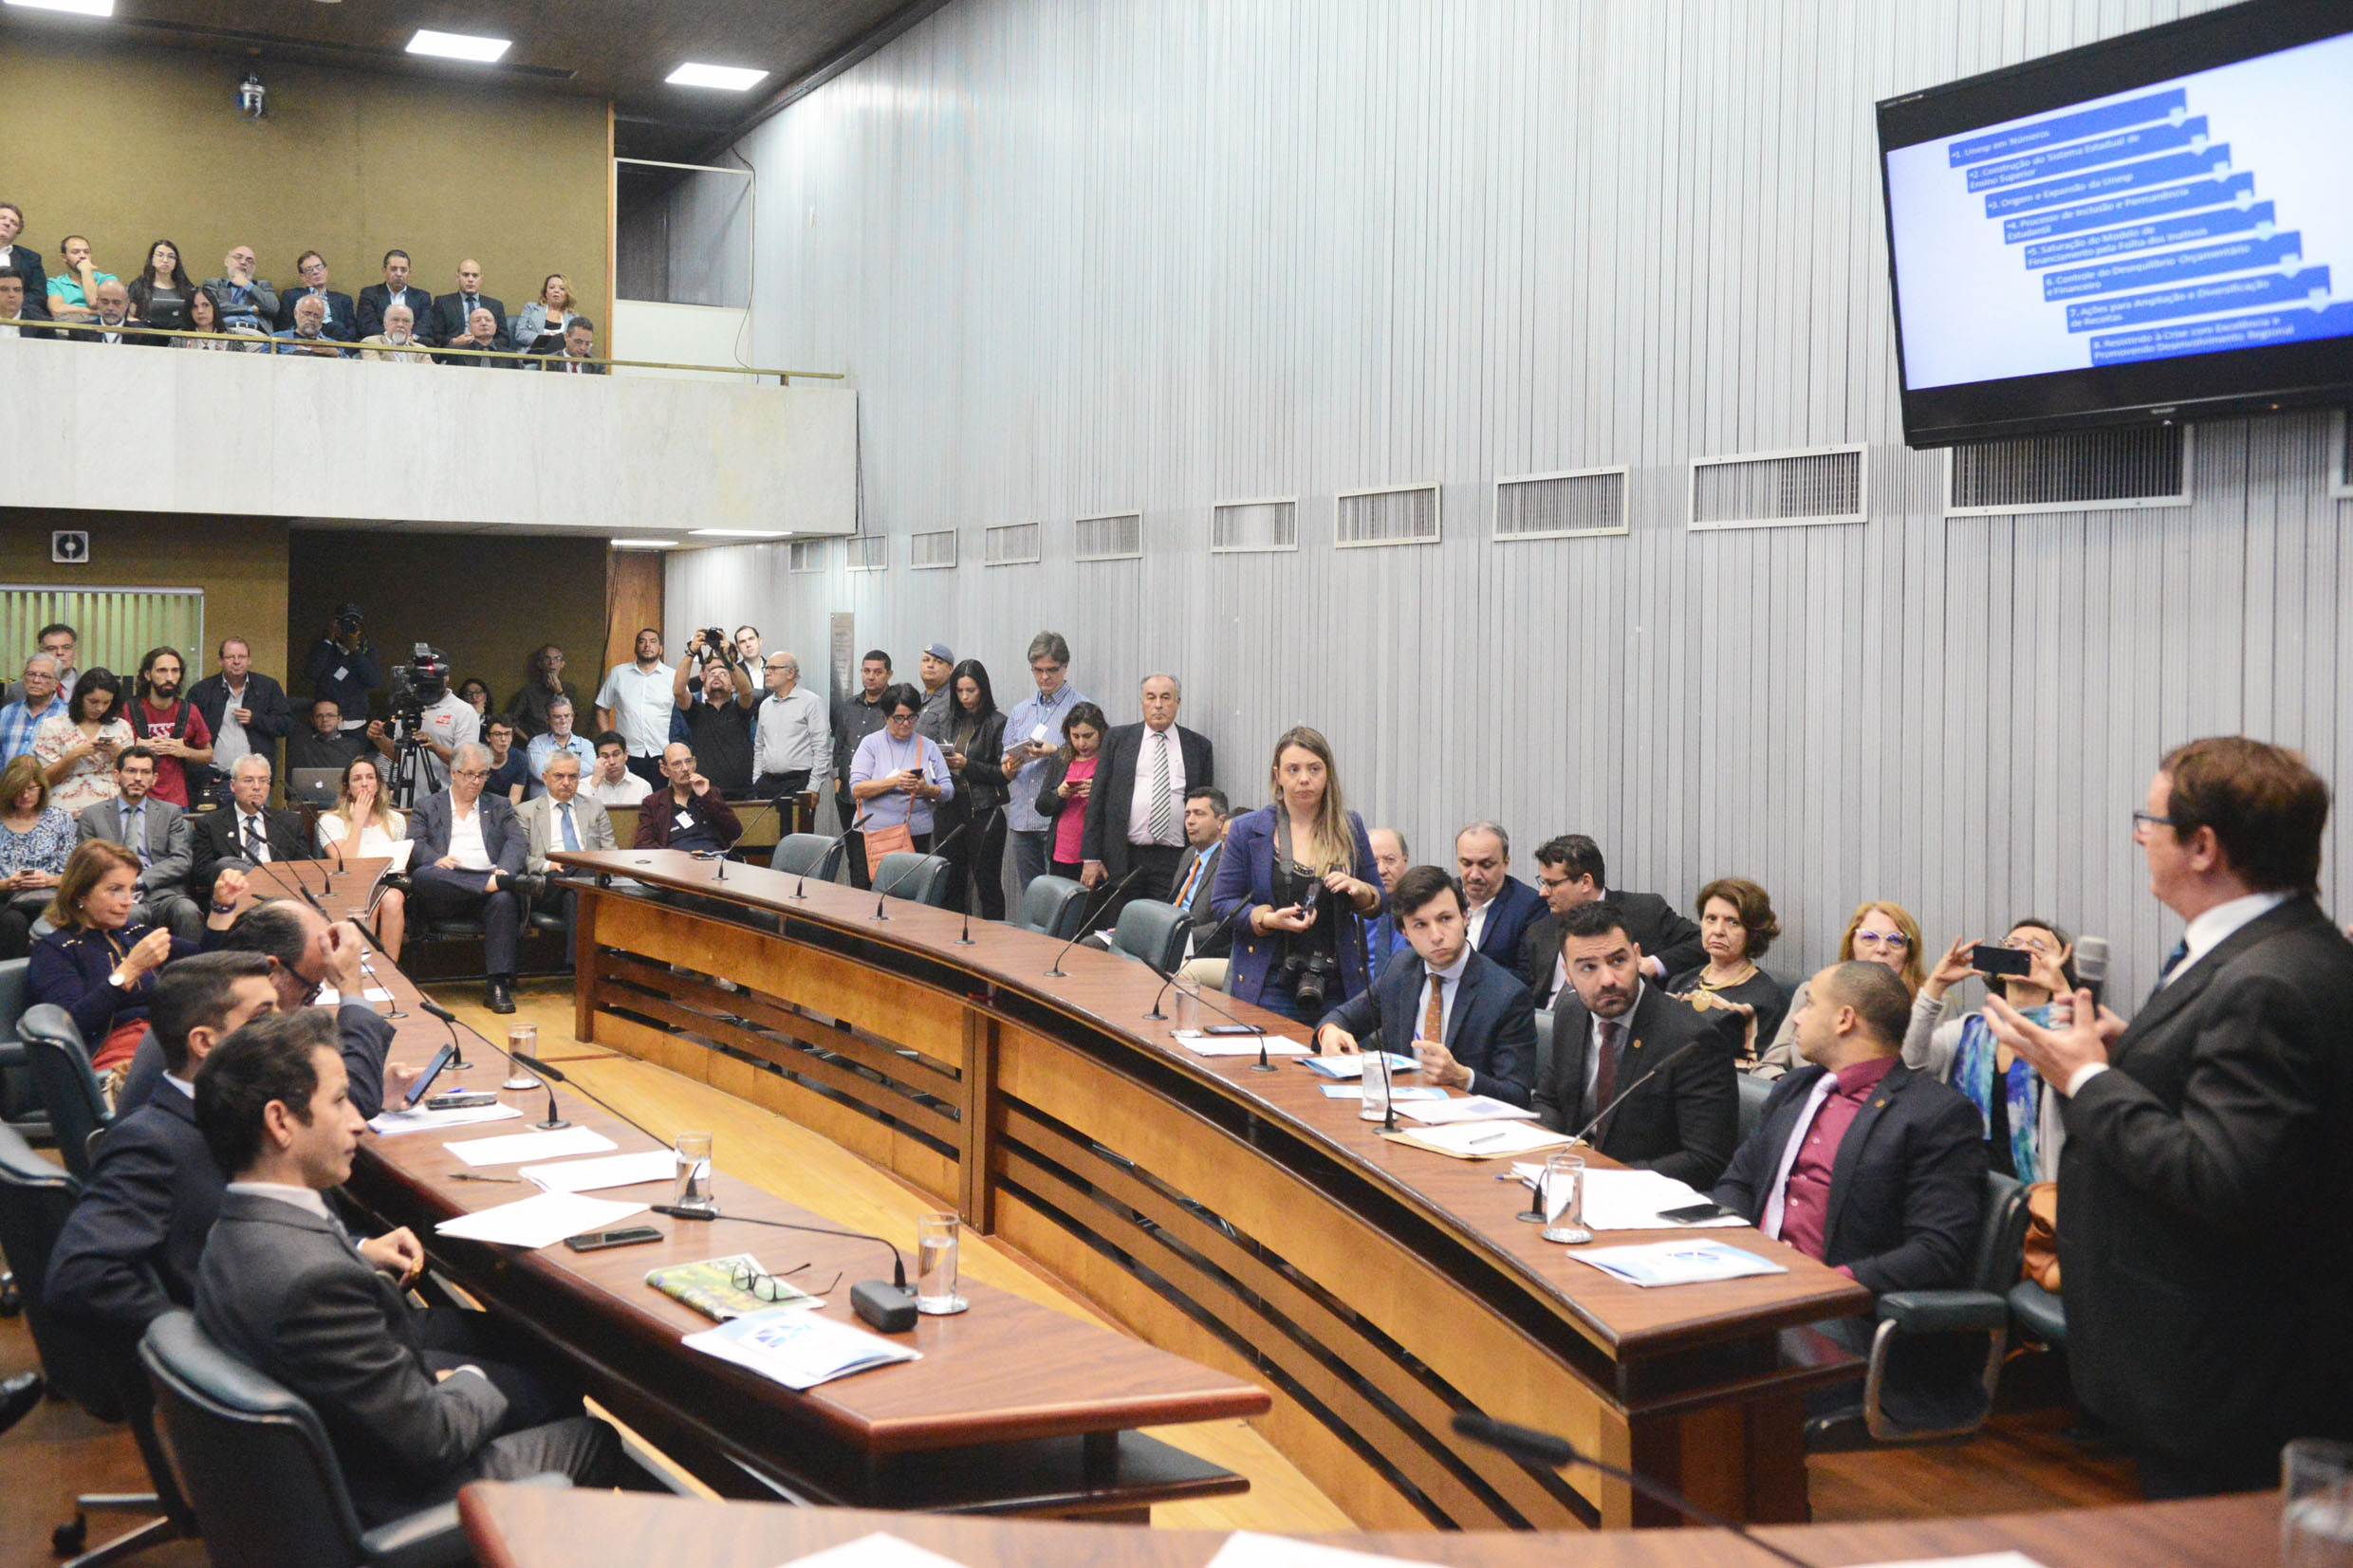 Parlamentares na CPI<a style='float:right' href='https://www3.al.sp.gov.br/repositorio/noticia/N-06-2019/fg236101.jpg' target=_blank><img src='/_img/material-file-download-white.png' width='14px' alt='Clique para baixar a imagem'></a>